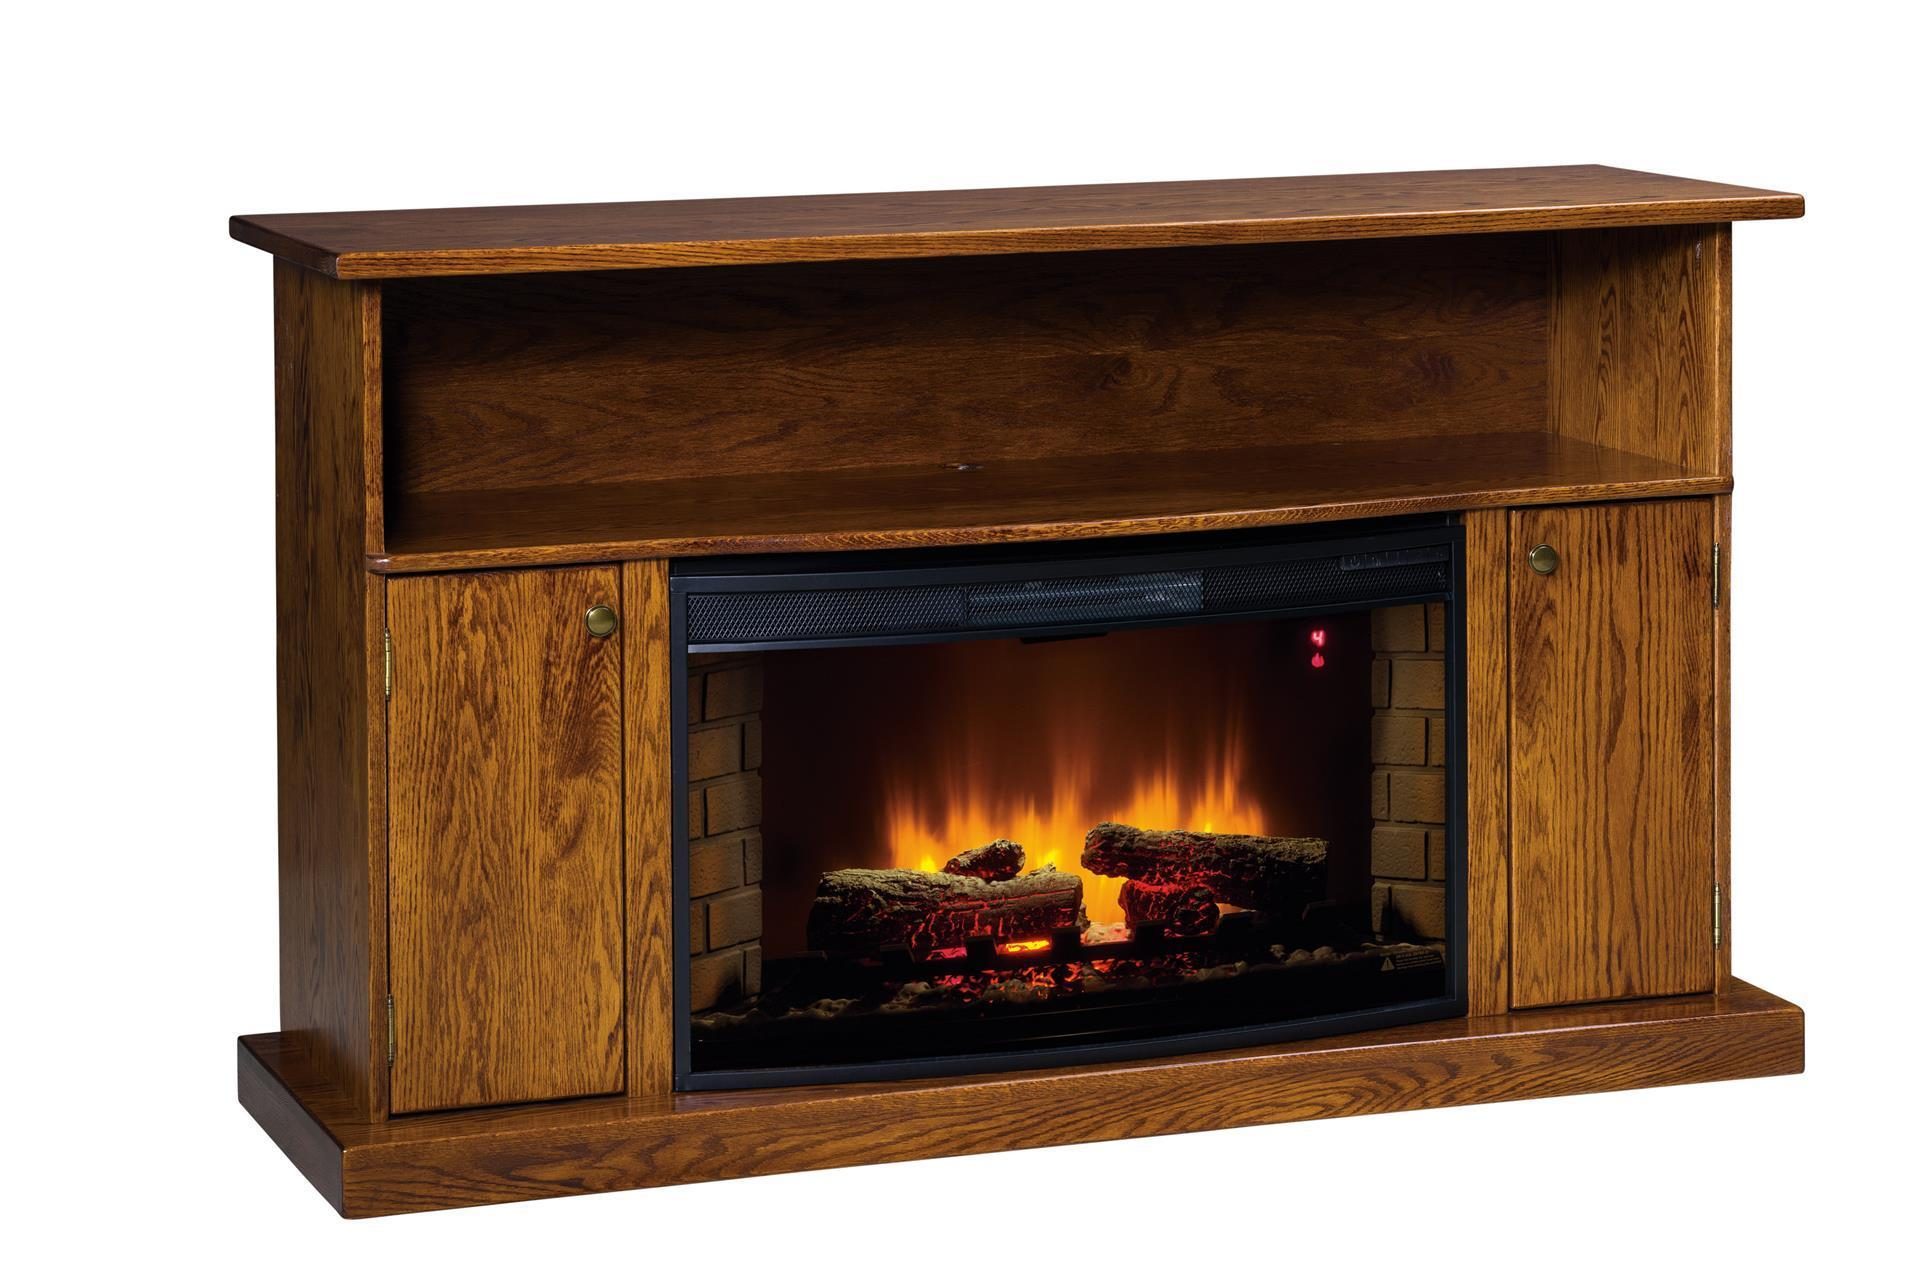 Outstanding Cheyenne Deluxe Electric Fireplace Entertainment Center Interior Design Ideas Apansoteloinfo